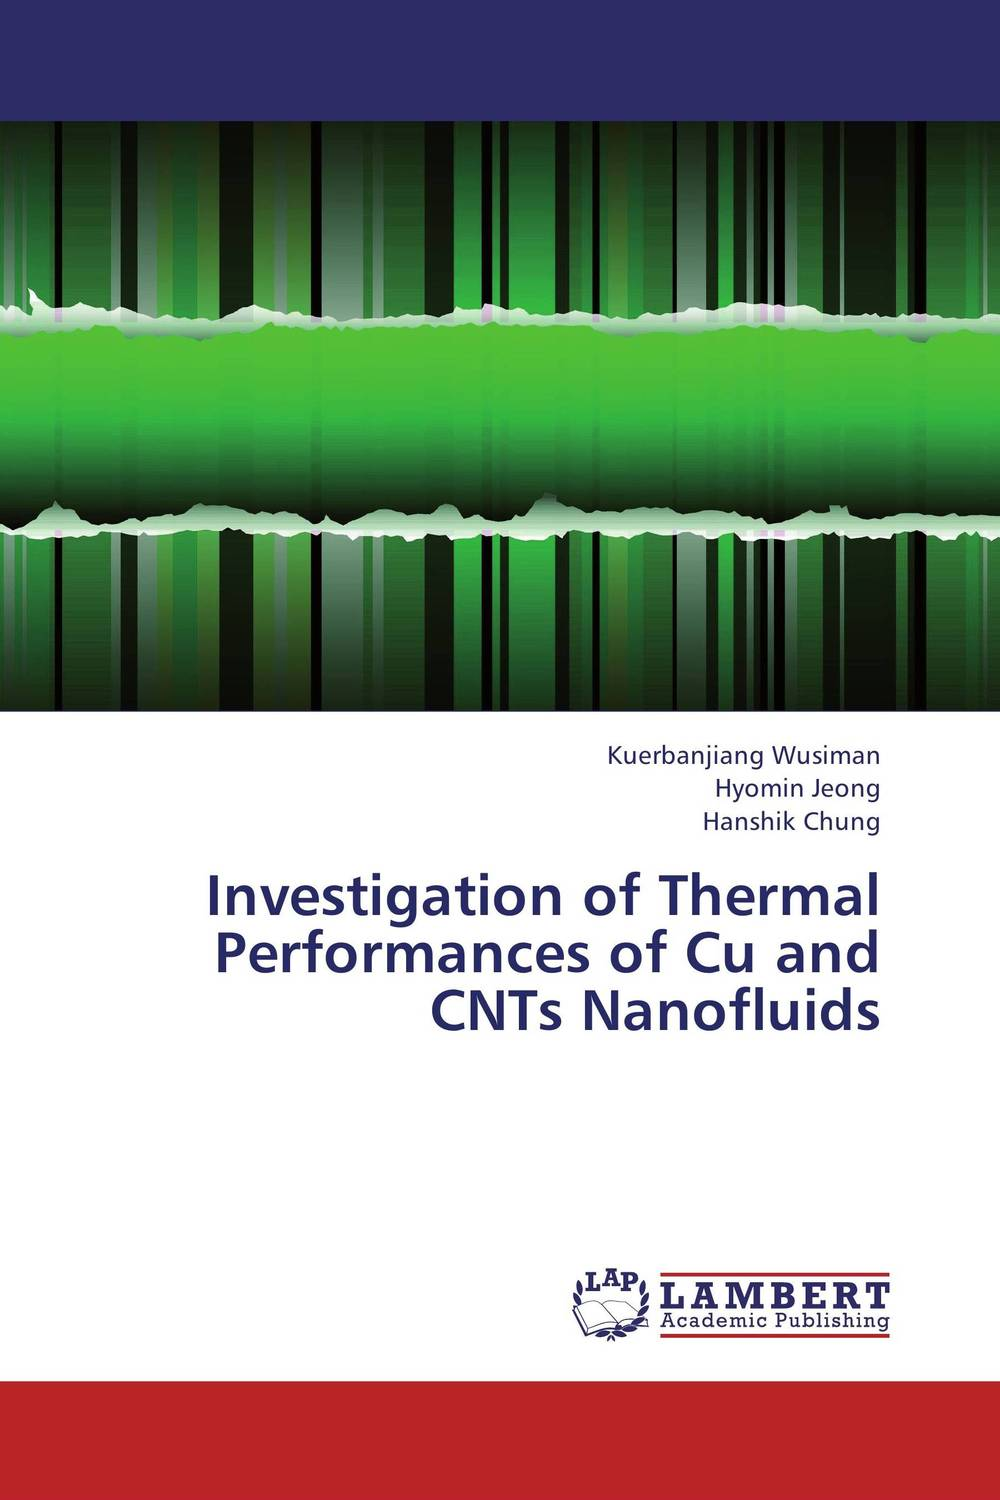 Investigation of Thermal Performances of Cu and CNTs Nanofluids synthetic graphite cooling film paste 300mm 300mm 0 025mm high thermal conductivity heat sink flat cpu phone led memory router